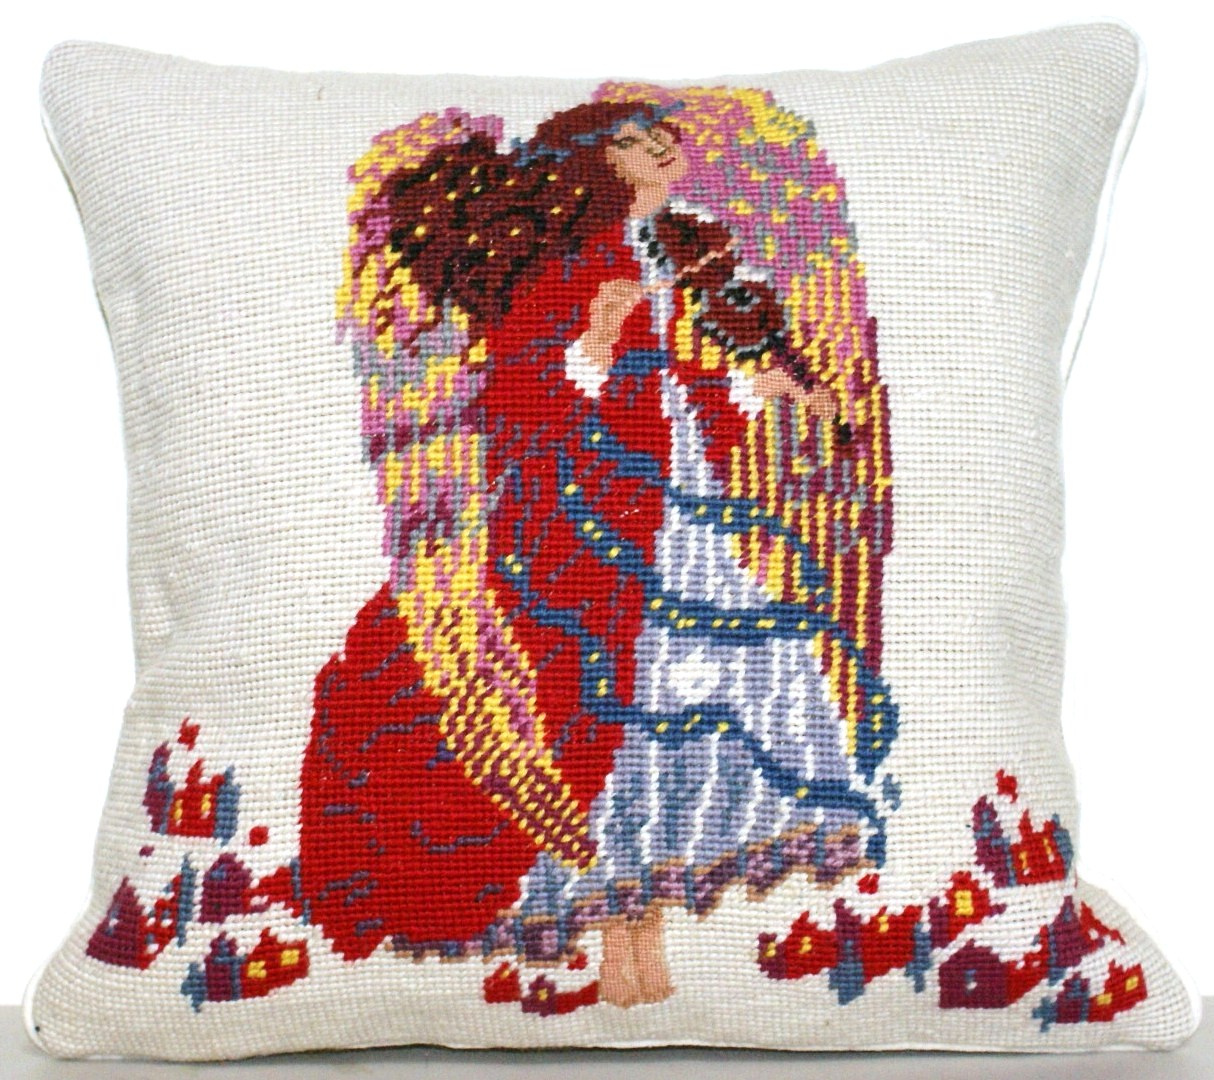 14″ x 14″ Handmade Wool Needlepoint Petit Point Angel Cushion Cover Pillow Case 12980568